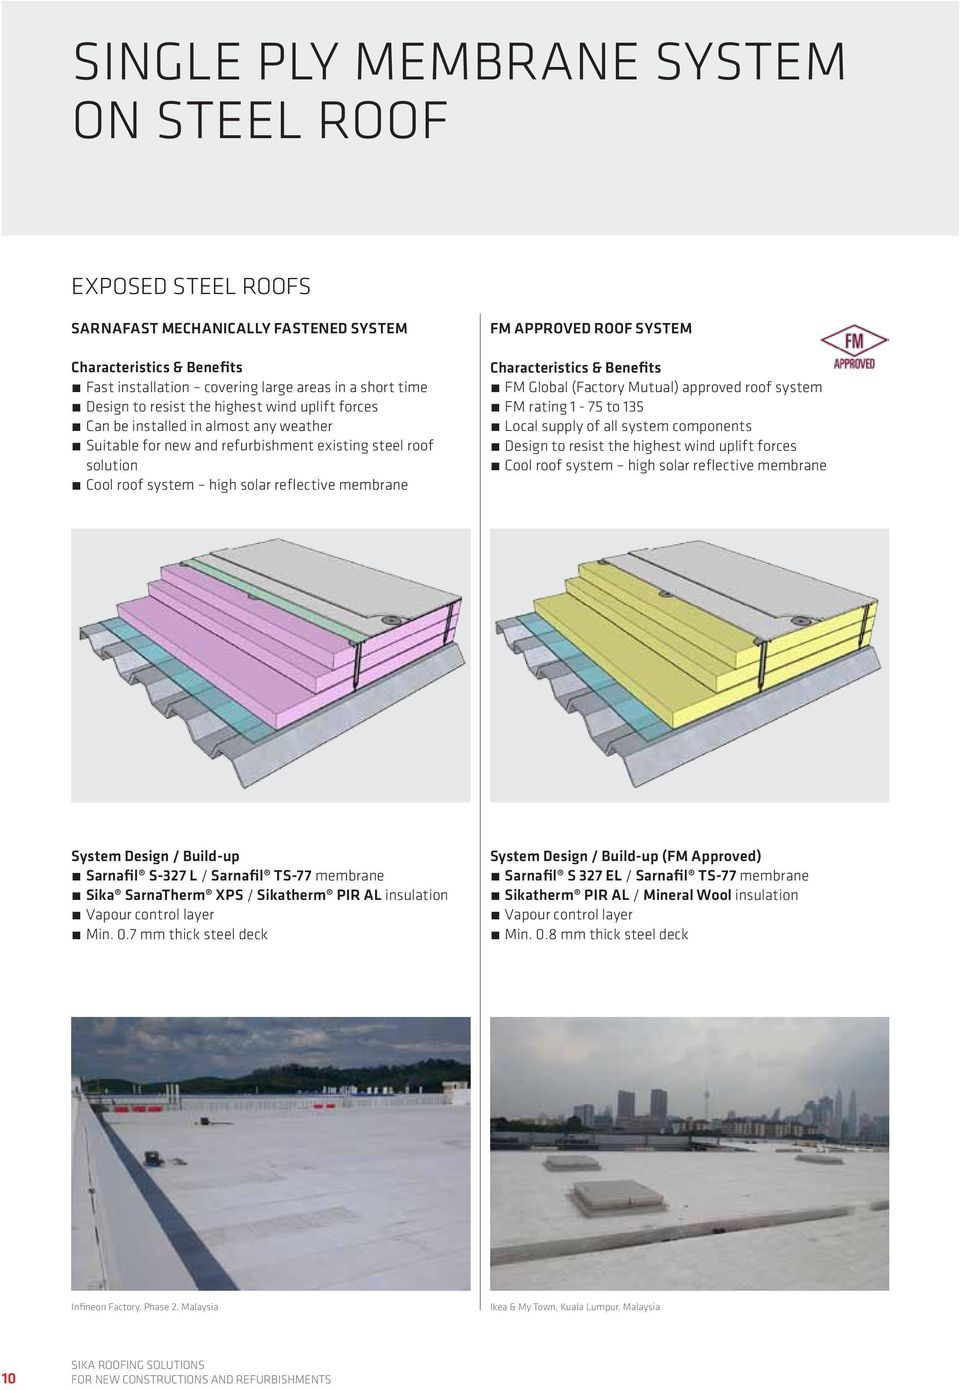 ROOFING SIka SOlutIONS FOR NEW CONStRuCtIONS and REFuRBISHMENtS - PDF